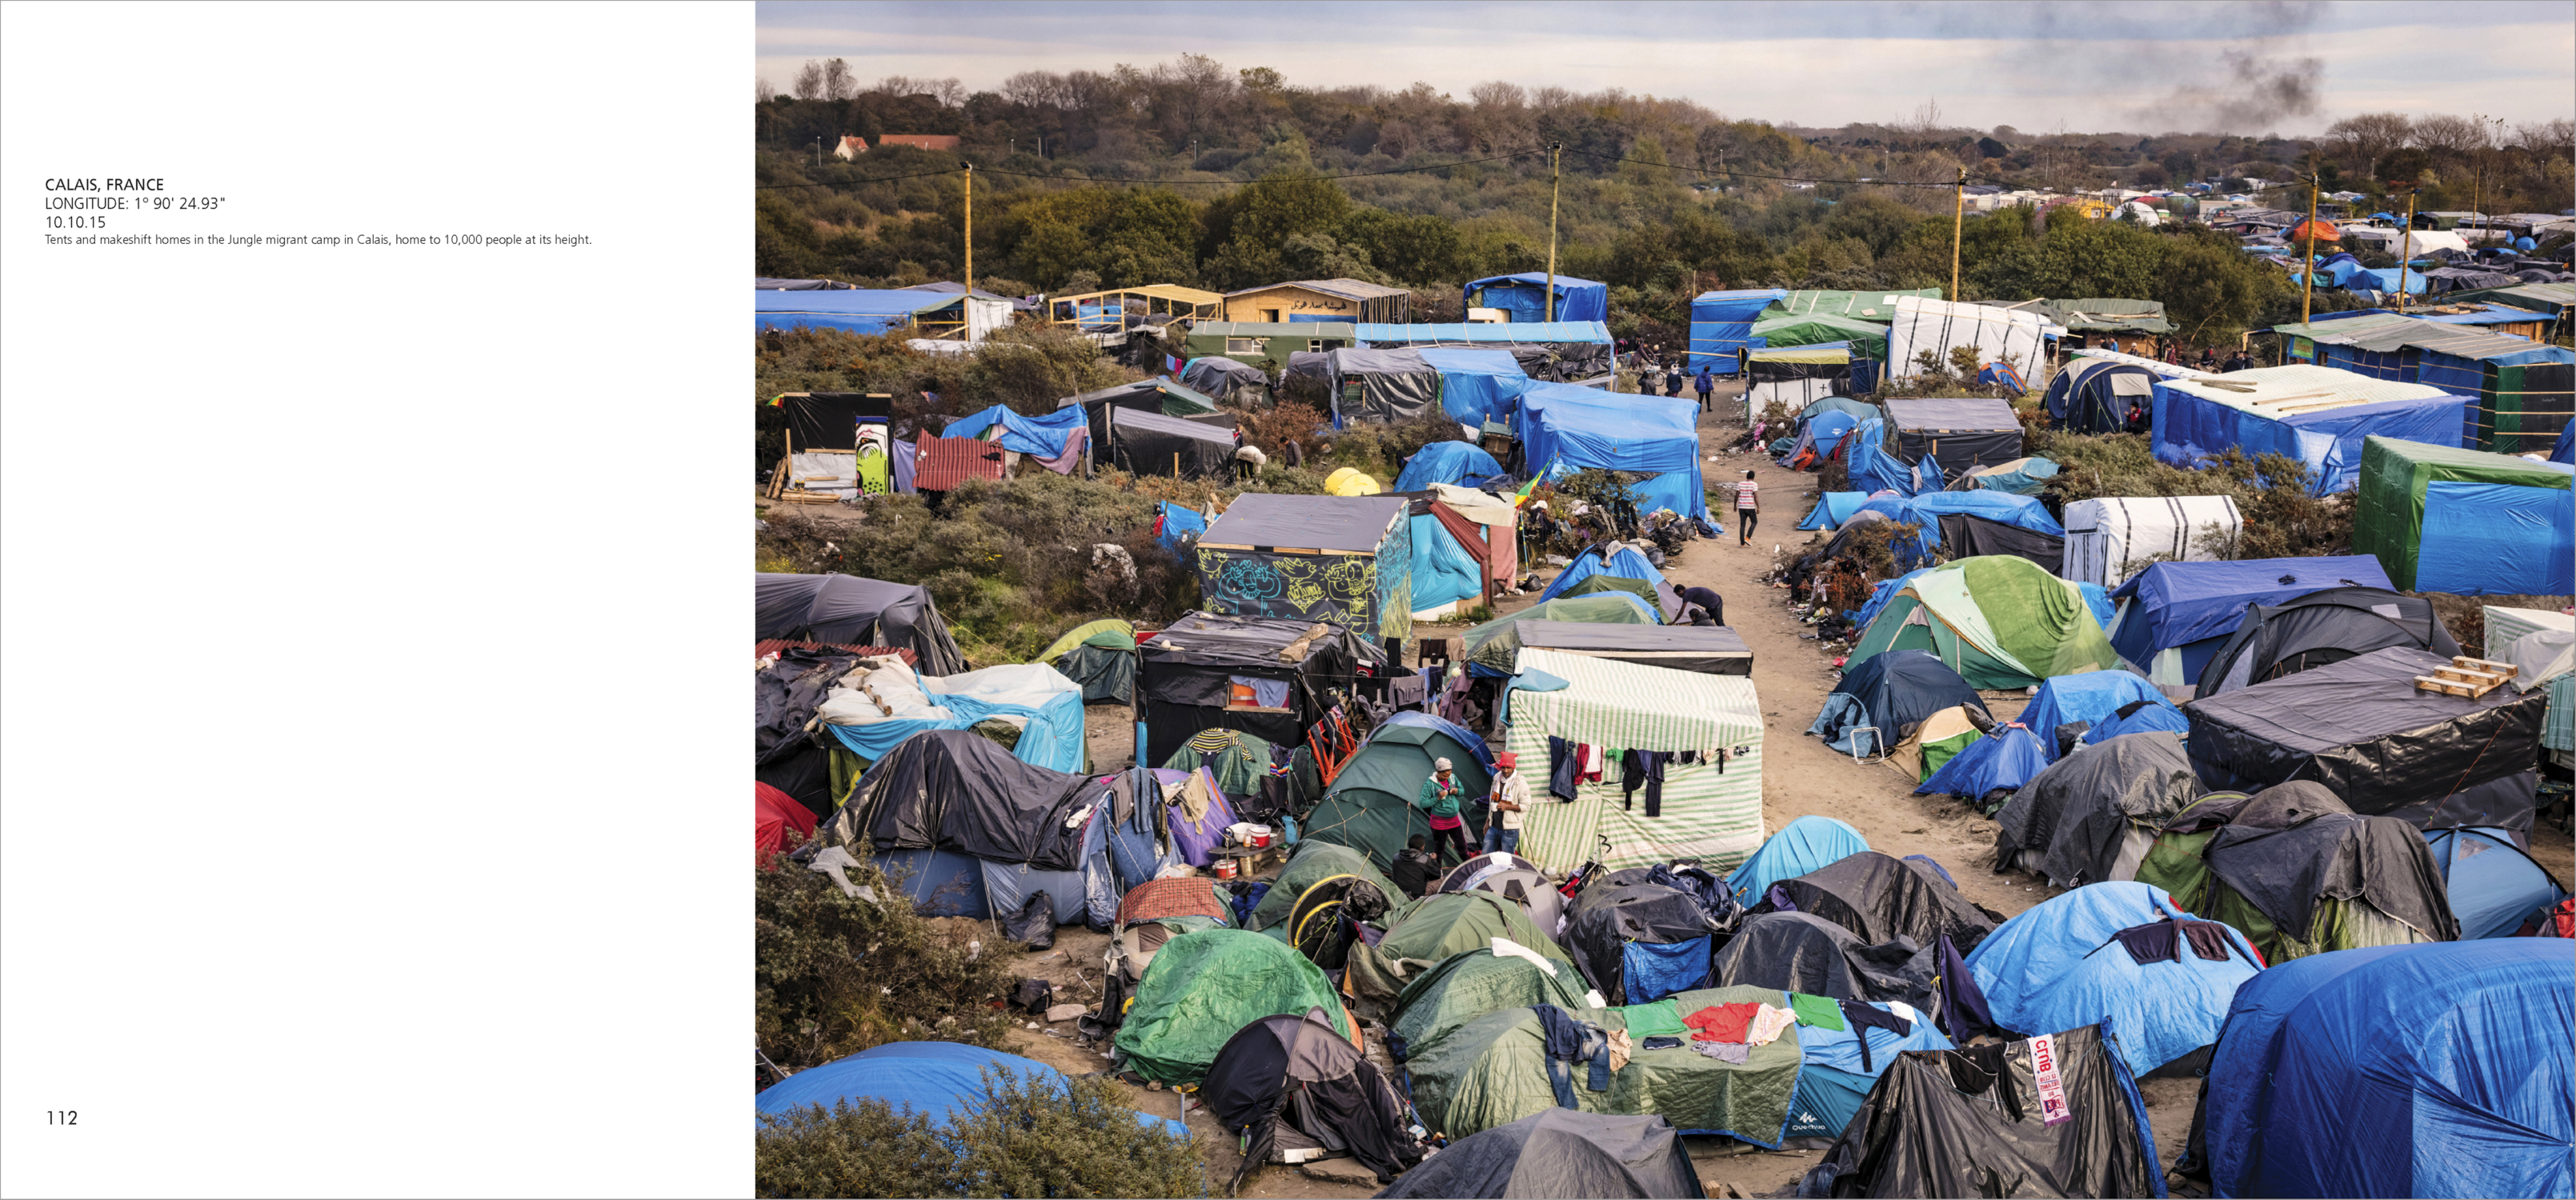 Tents and makeshift homes in the Jungle migrant camp in Calais, home to 10,000 people at its height.